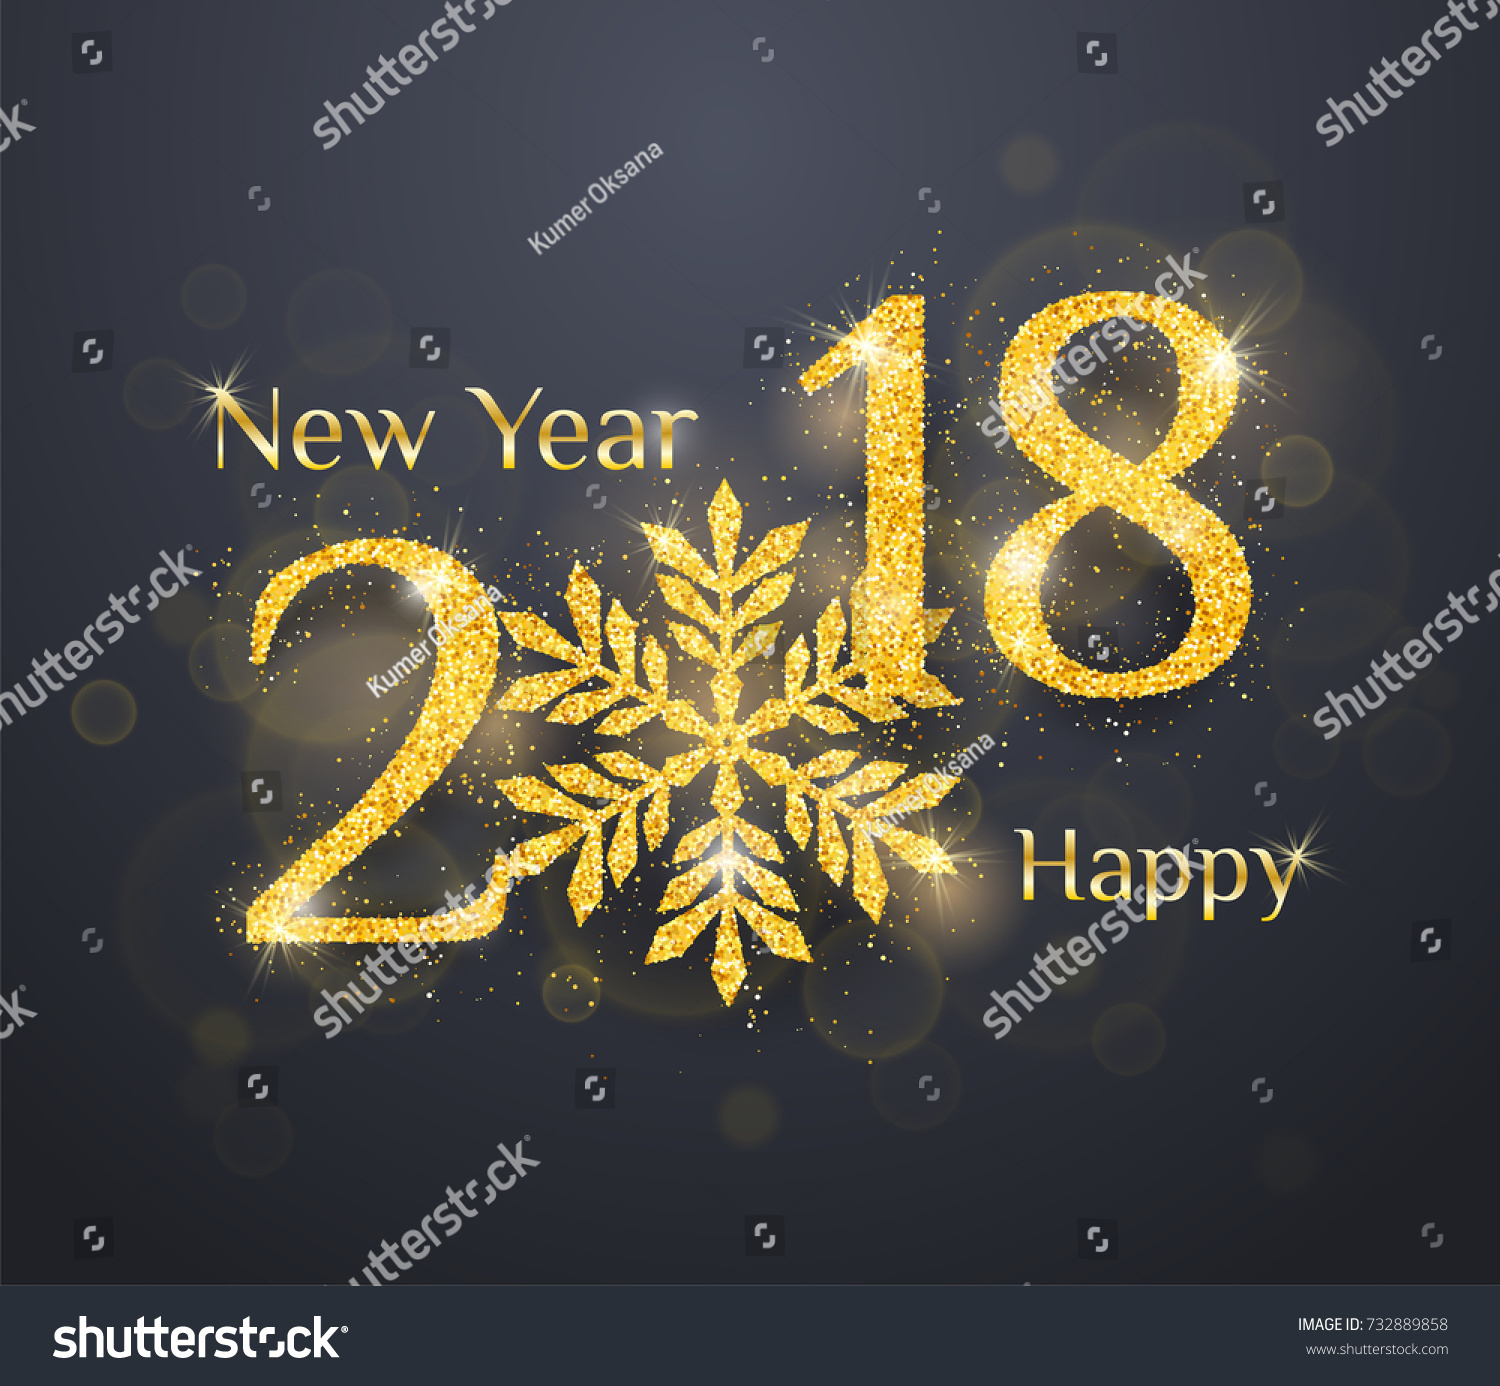 2018 happy new year greeting card stock vector royalty free 2018 happy new year greeting card background with golden glitter numbers on dark background vector m4hsunfo